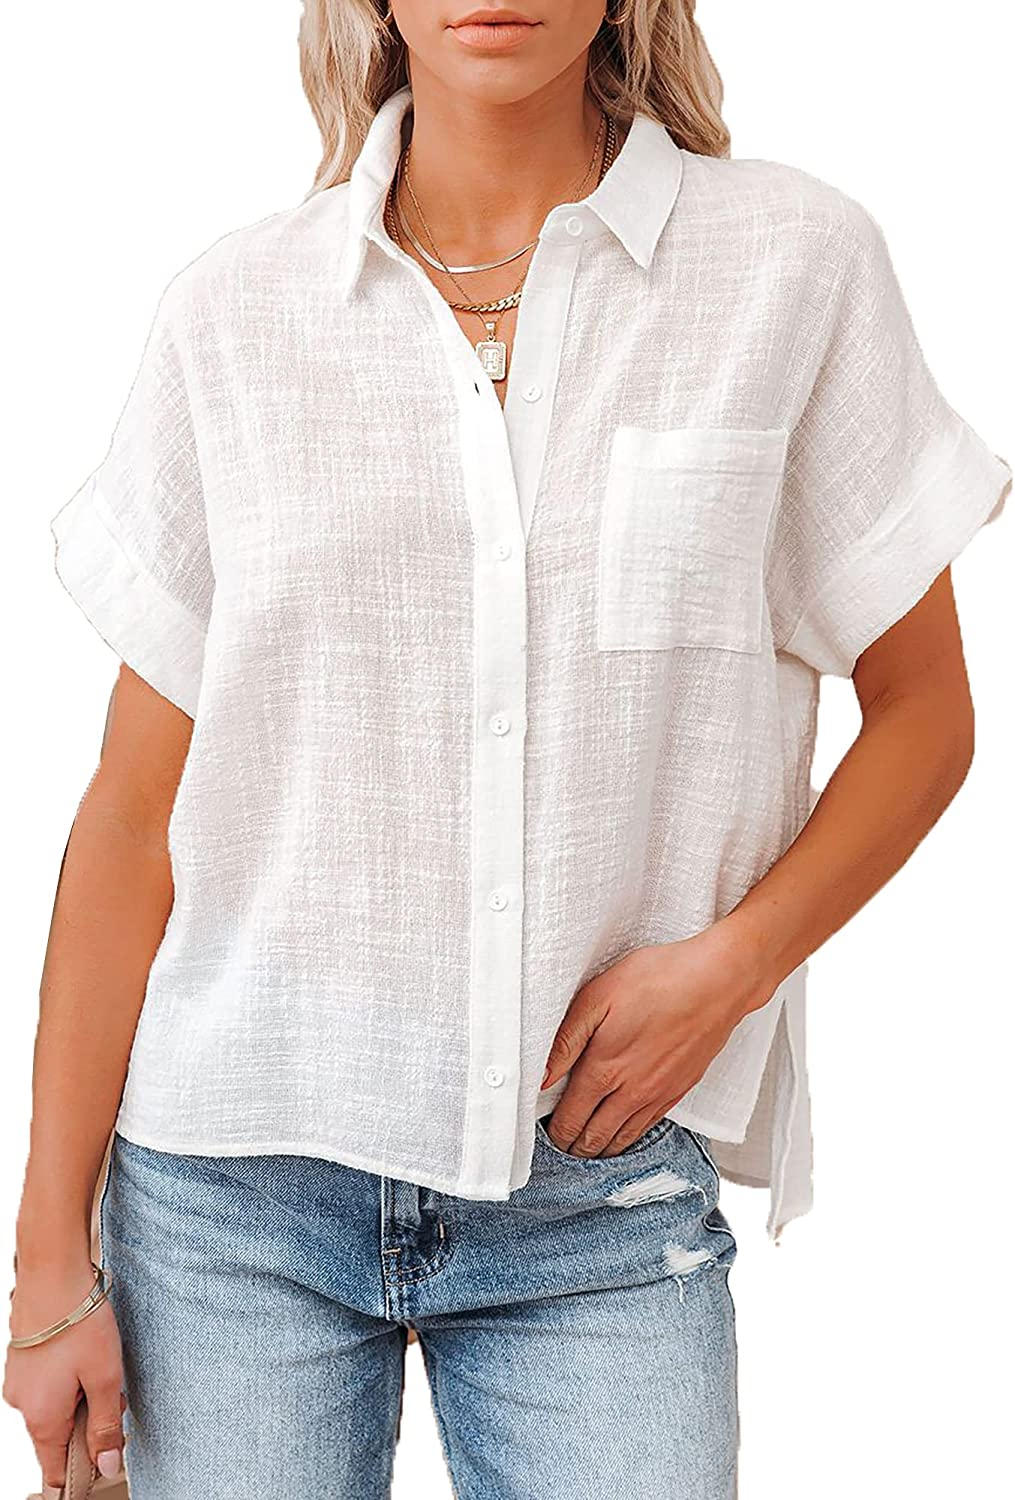 Womens Summer Tops Short Sleeve V Neck Button Down T Shirts Cotton Linen Causal Work Collared Blouses with Pockets